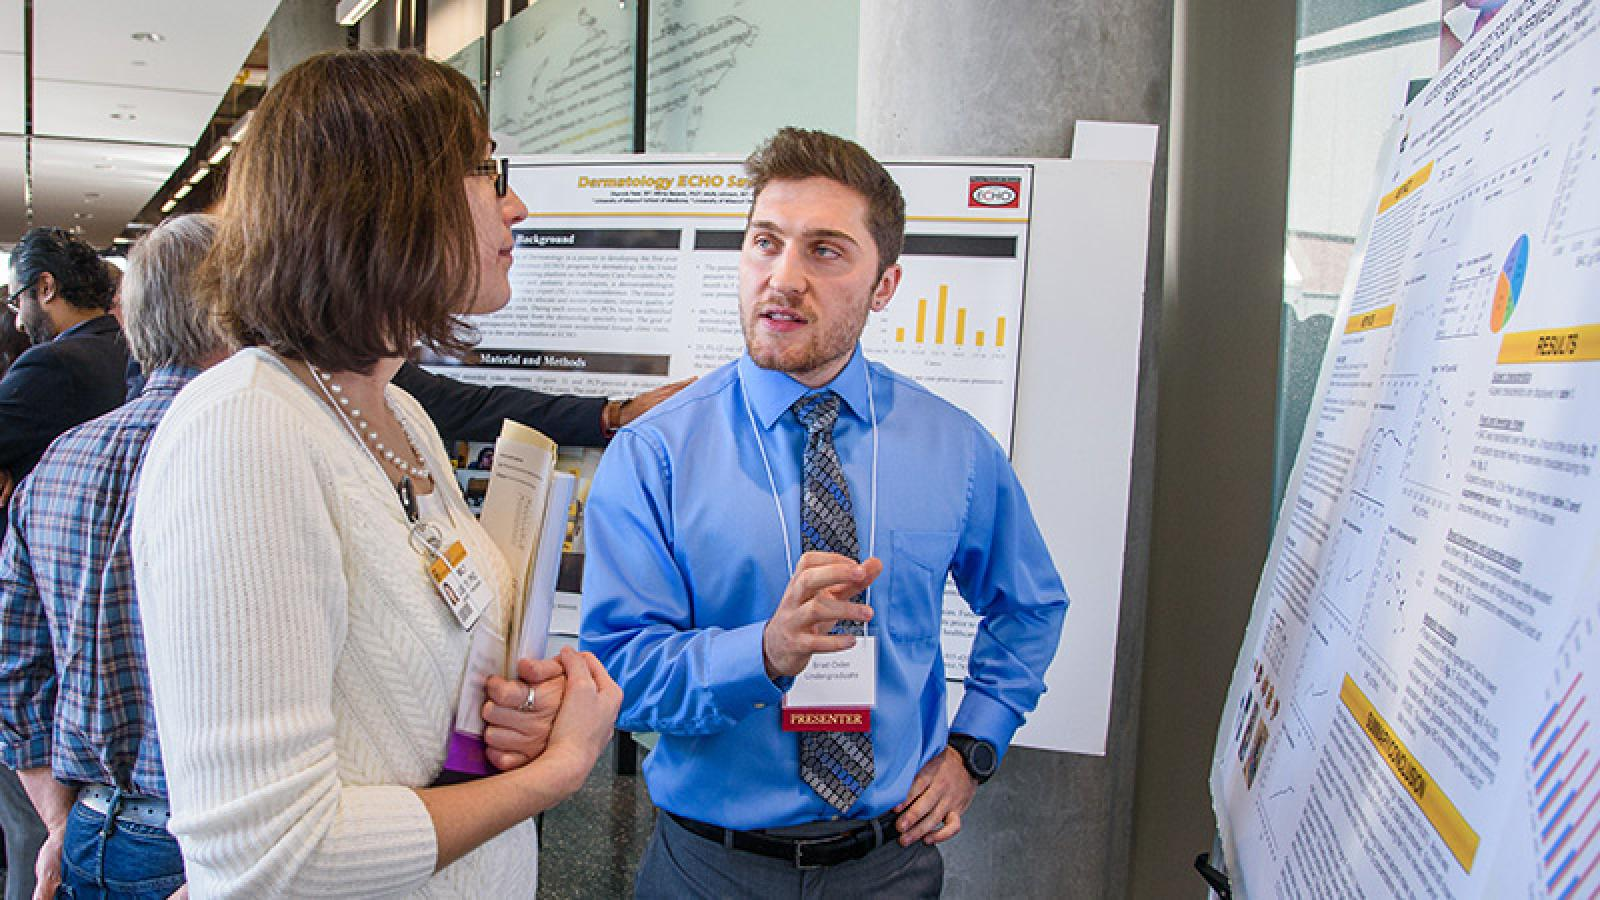 Photo of student presenting at conference.